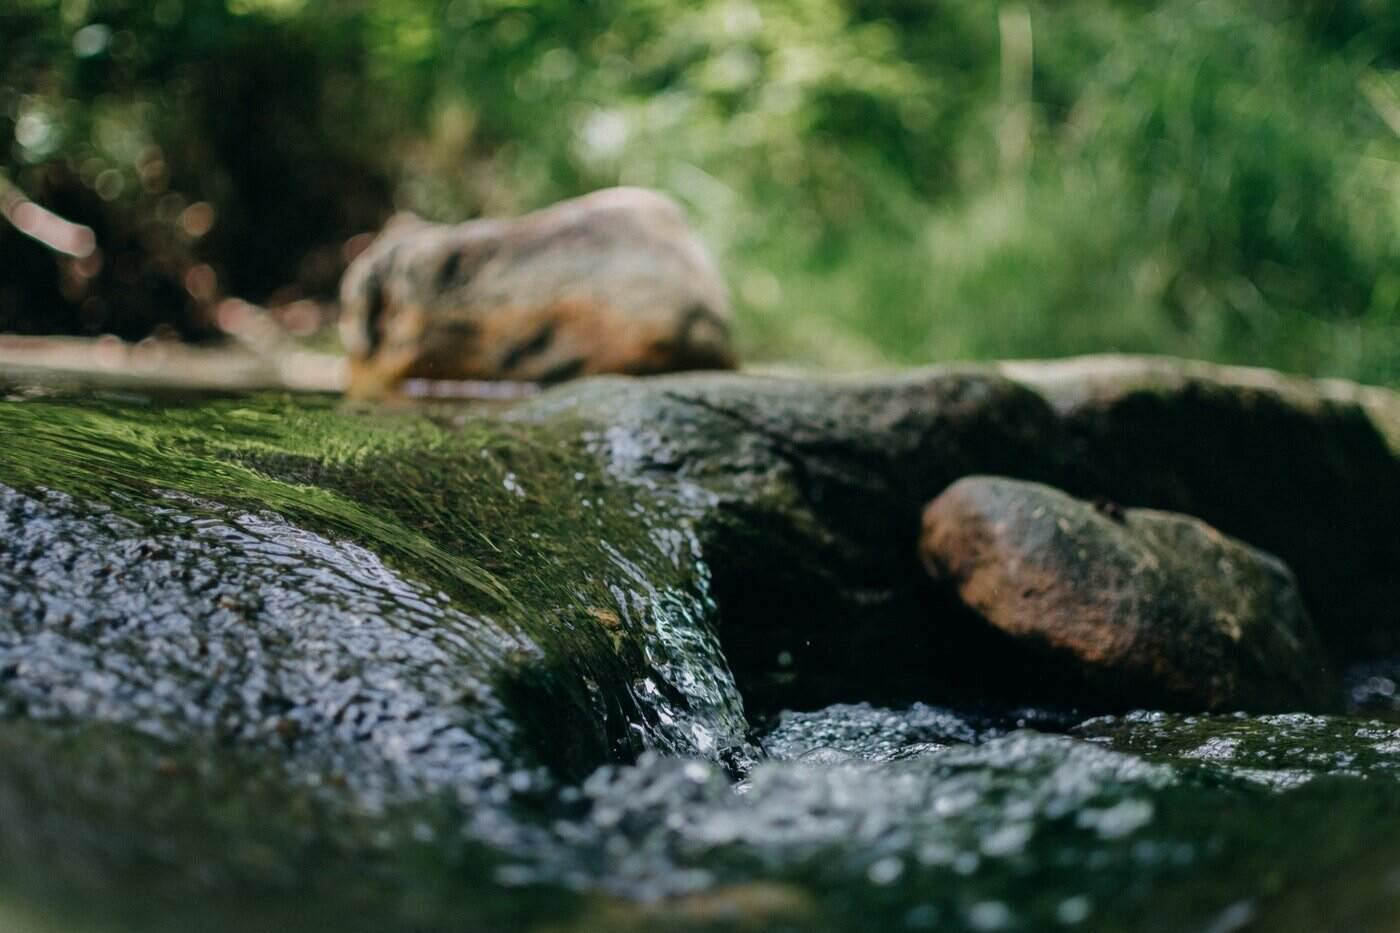 close up of water moving over rock - micro-hydro power for home energy